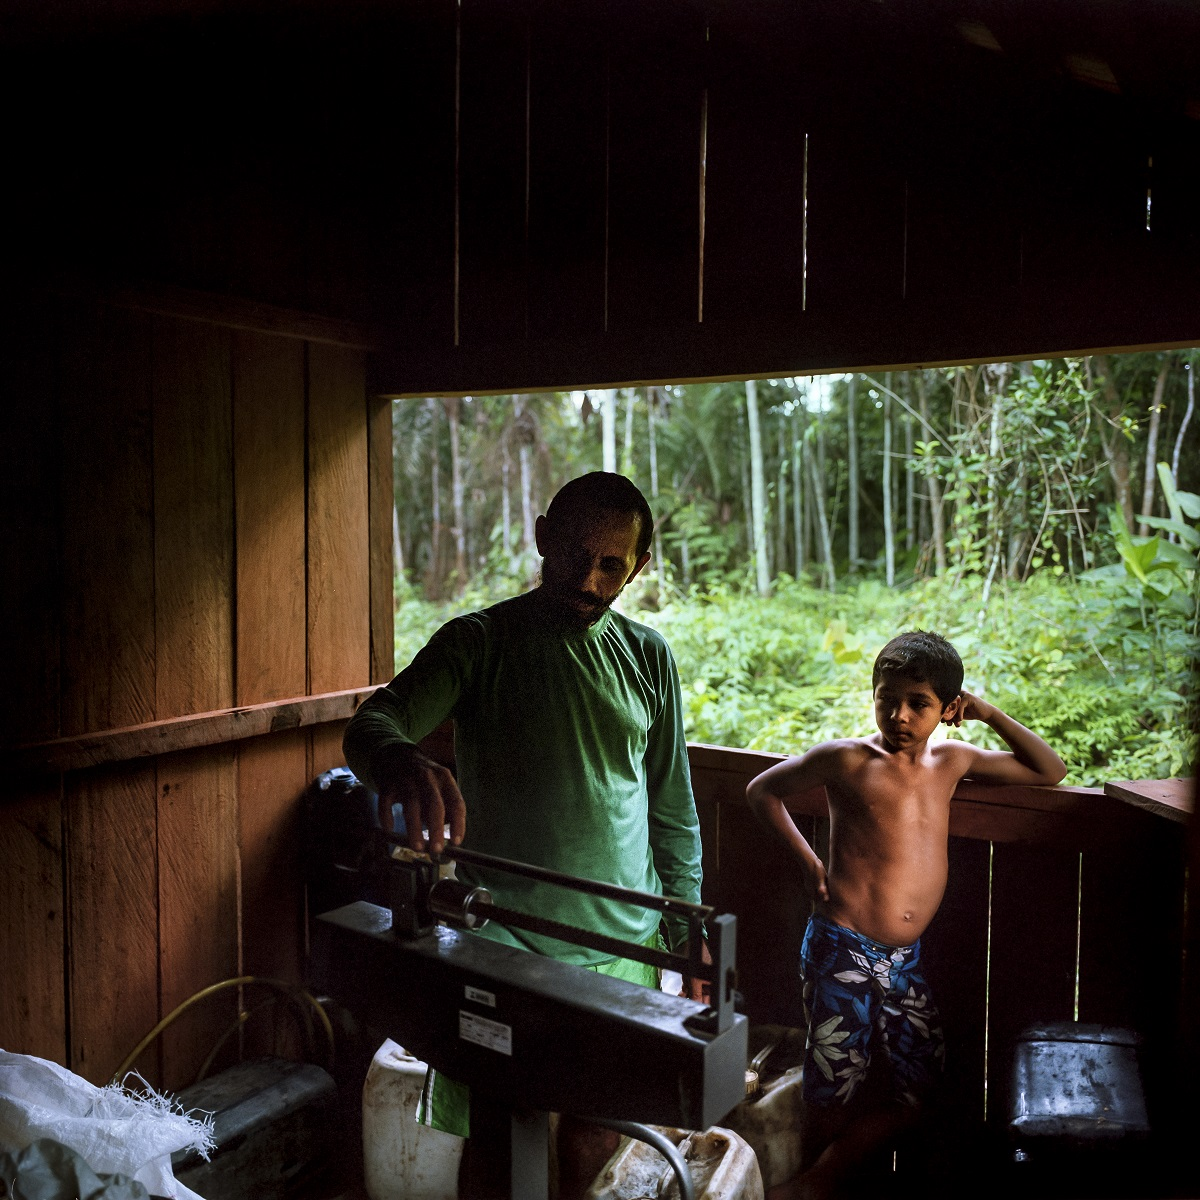 Pedro Pereira (l) at home. Photo by Maximo Anderson for Mongabay.